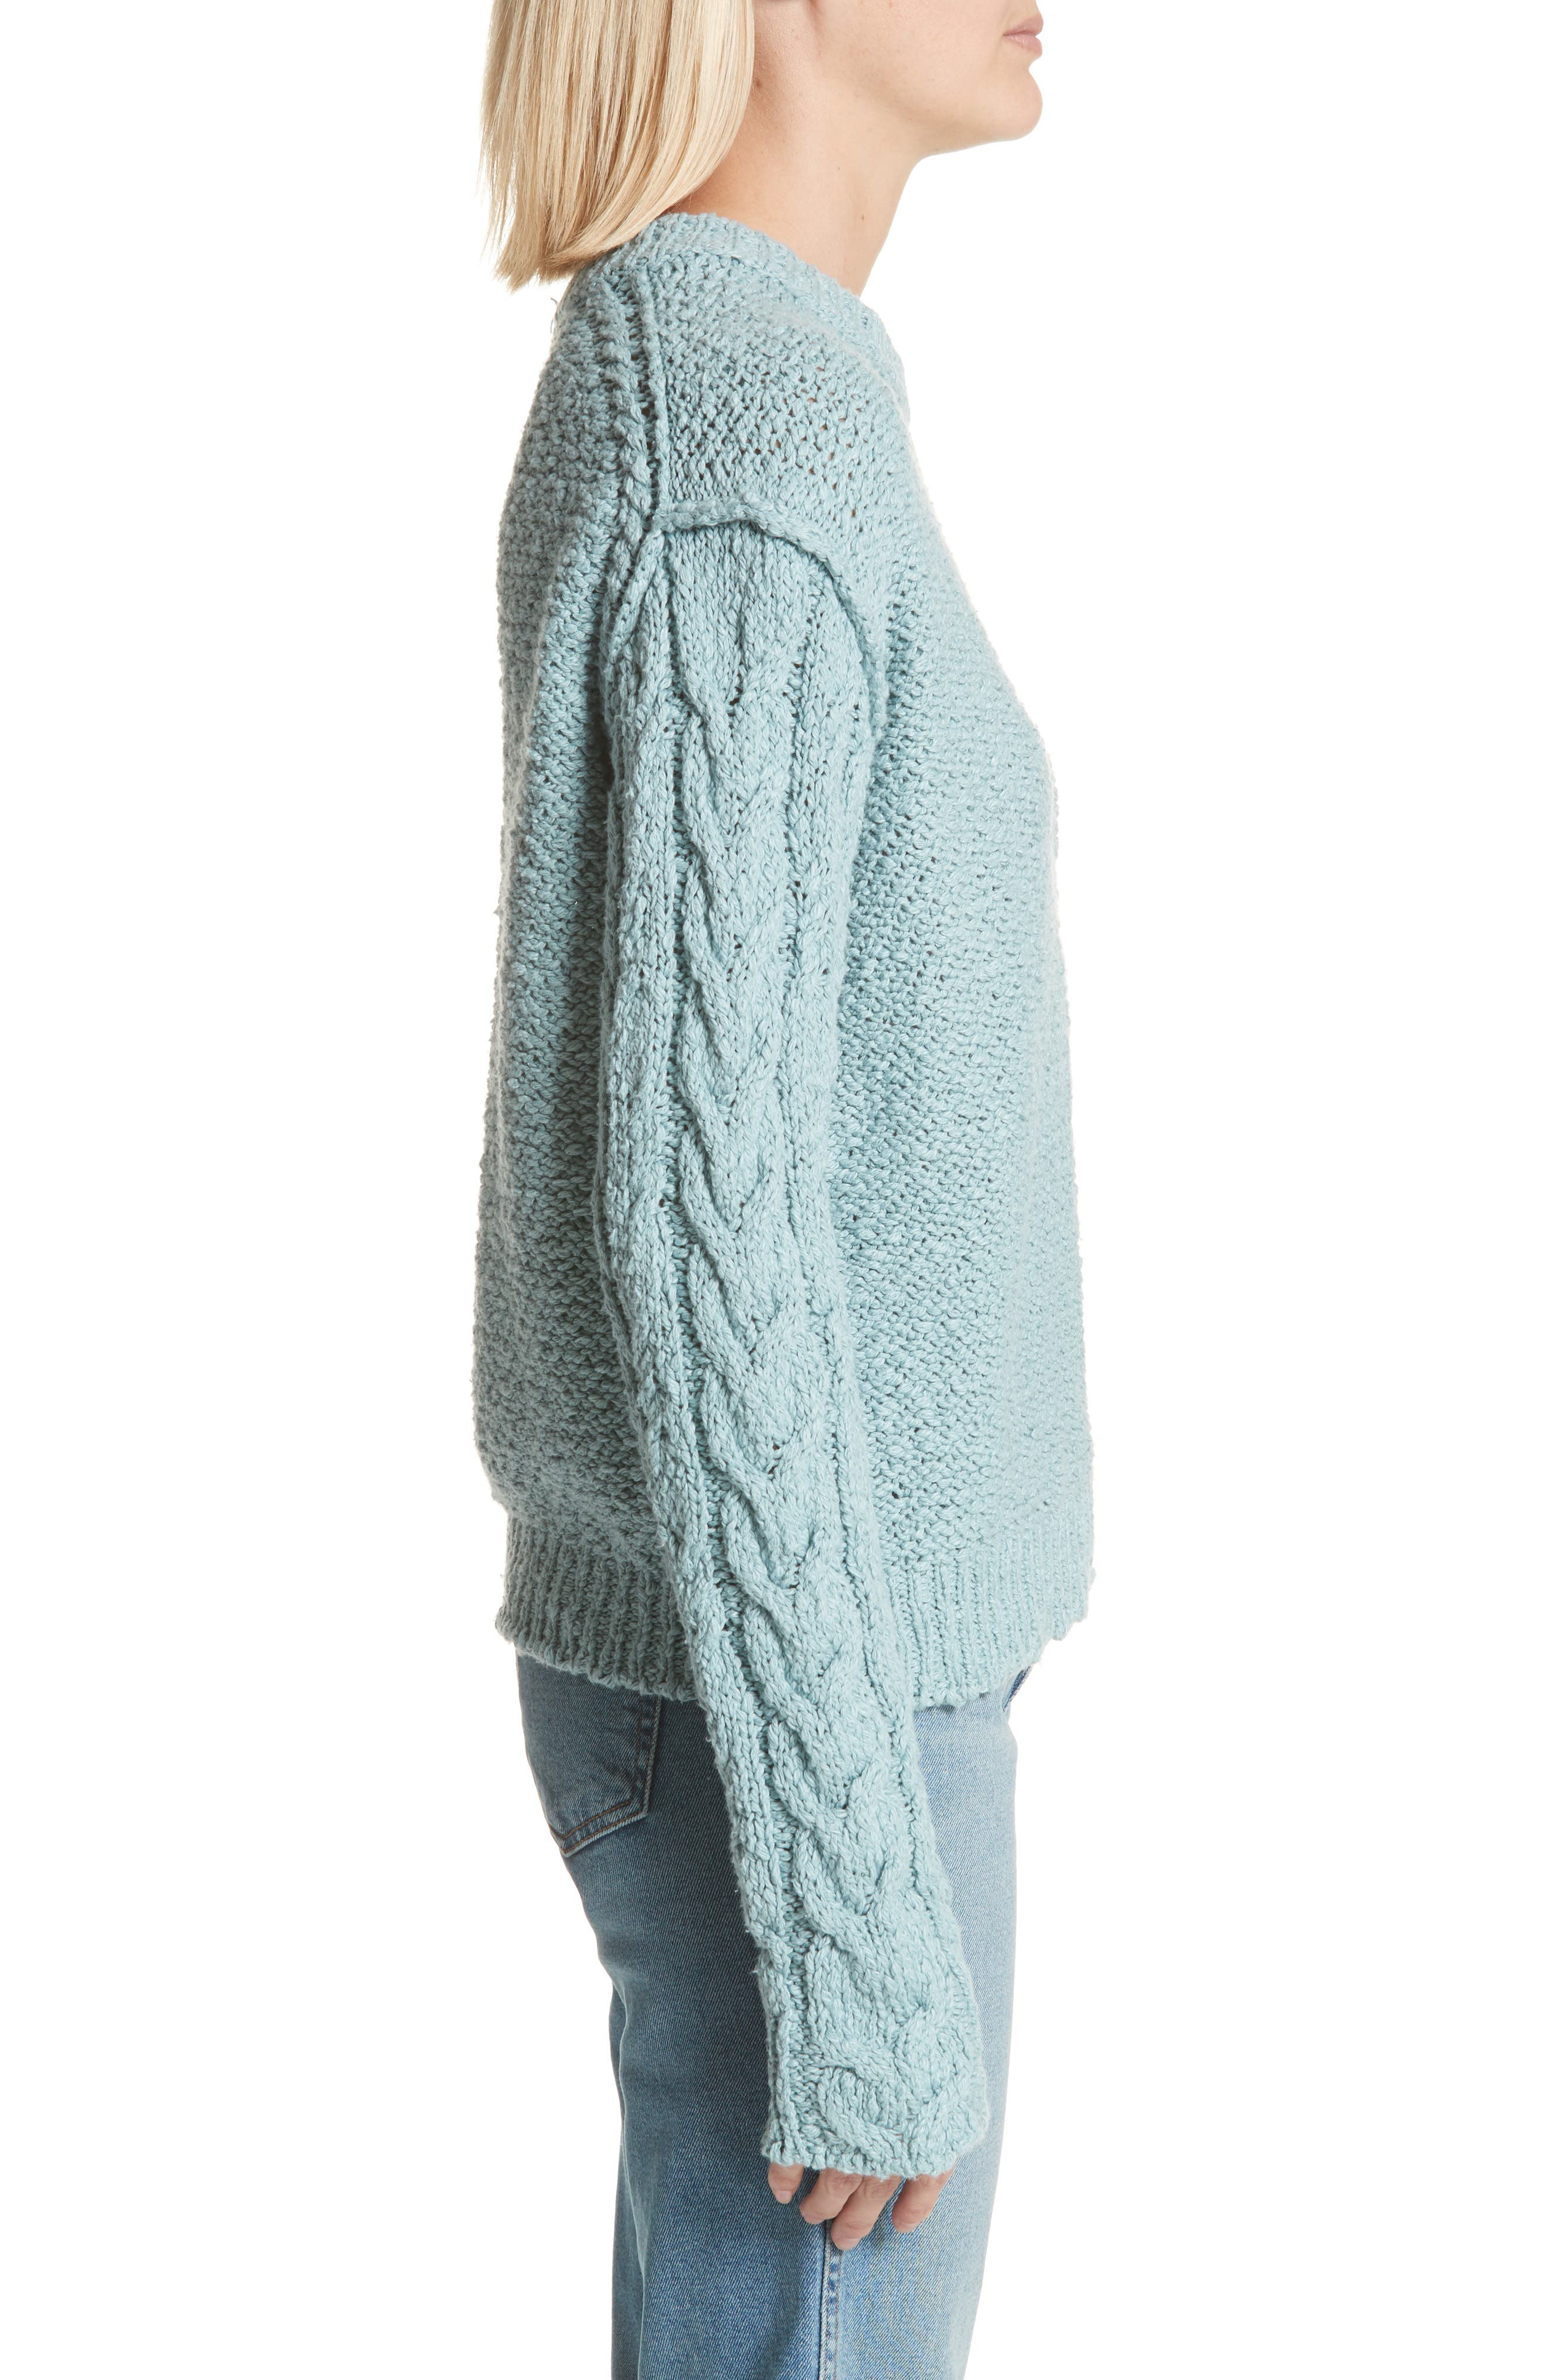 Hila Cable Sleeve Sweater,                             Alternate thumbnail 3, color,                             400